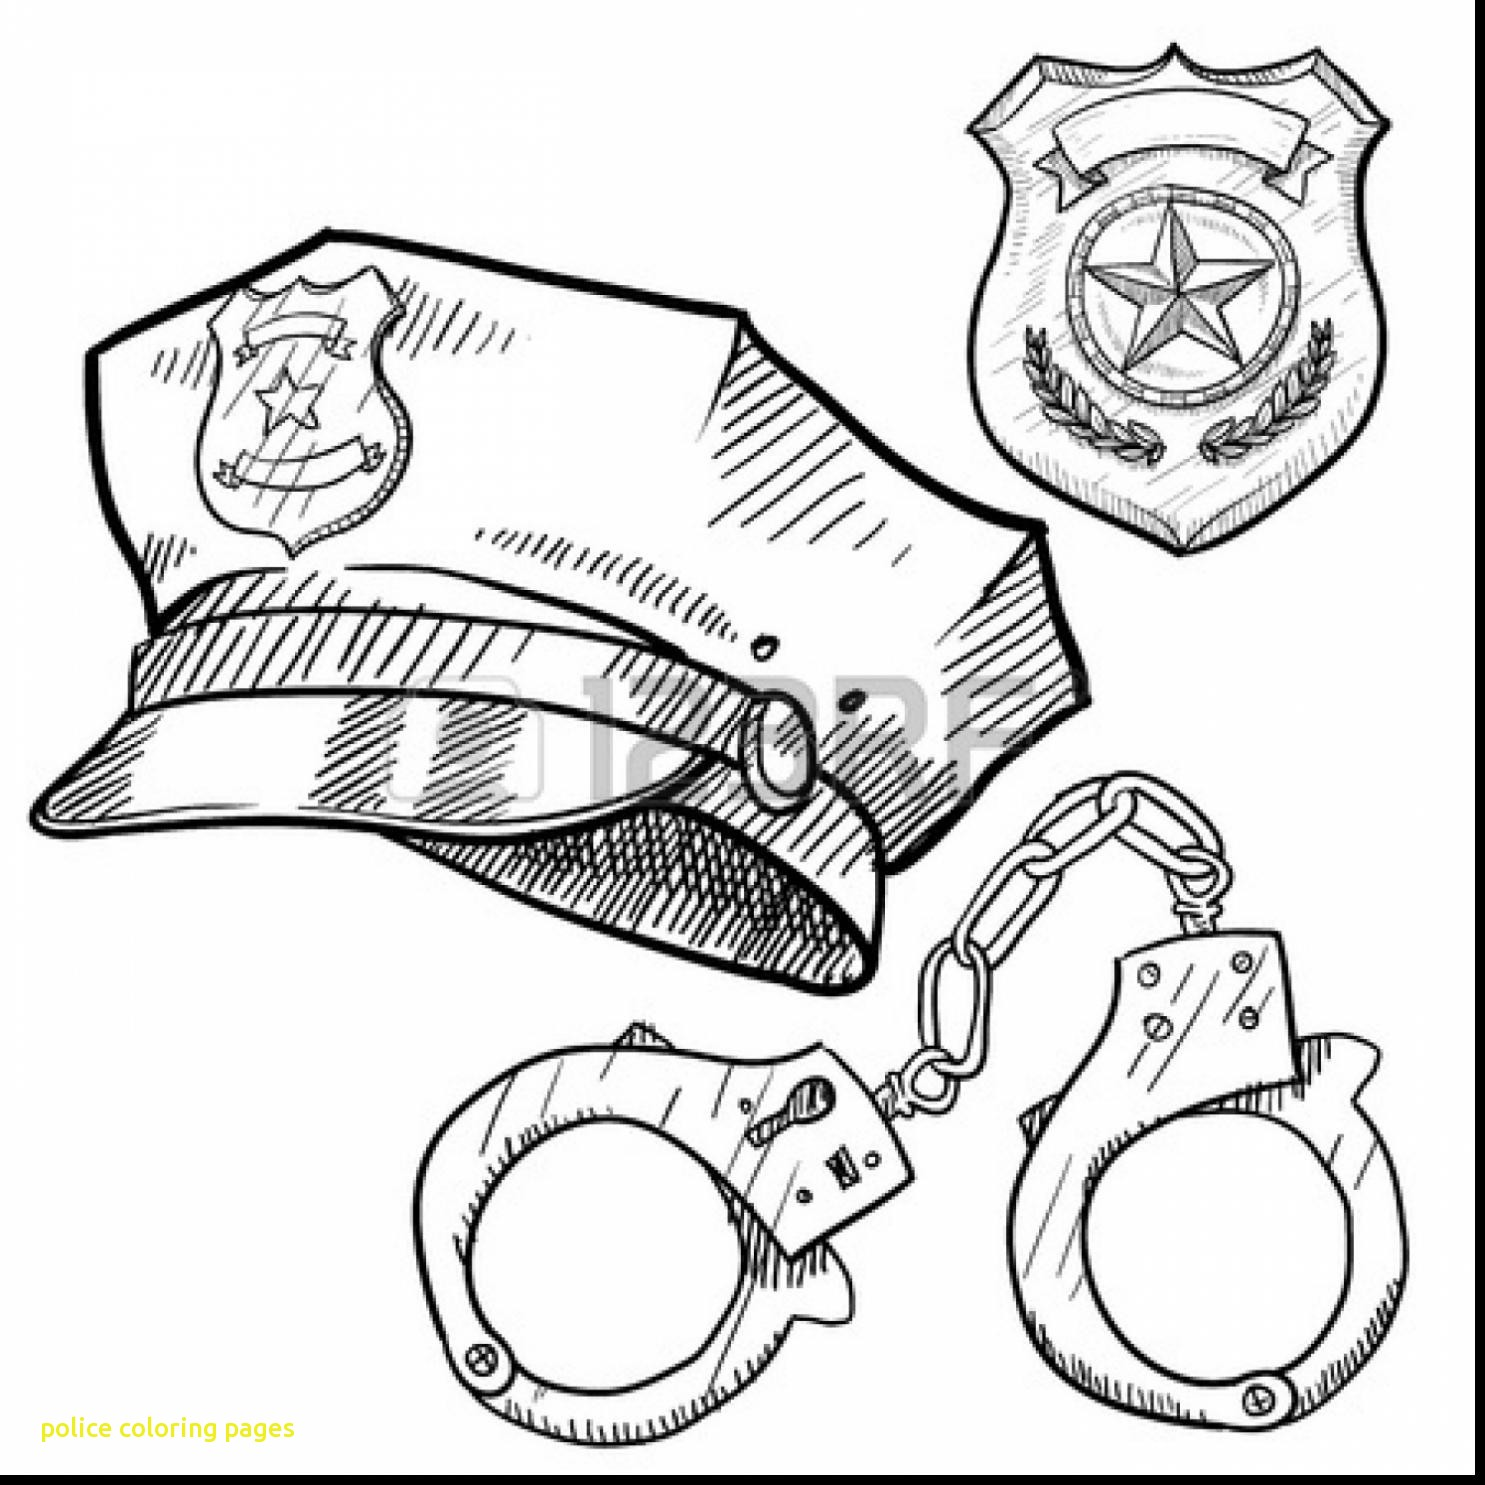 1485x1485 Successful Police Colouring Pictures Car Color